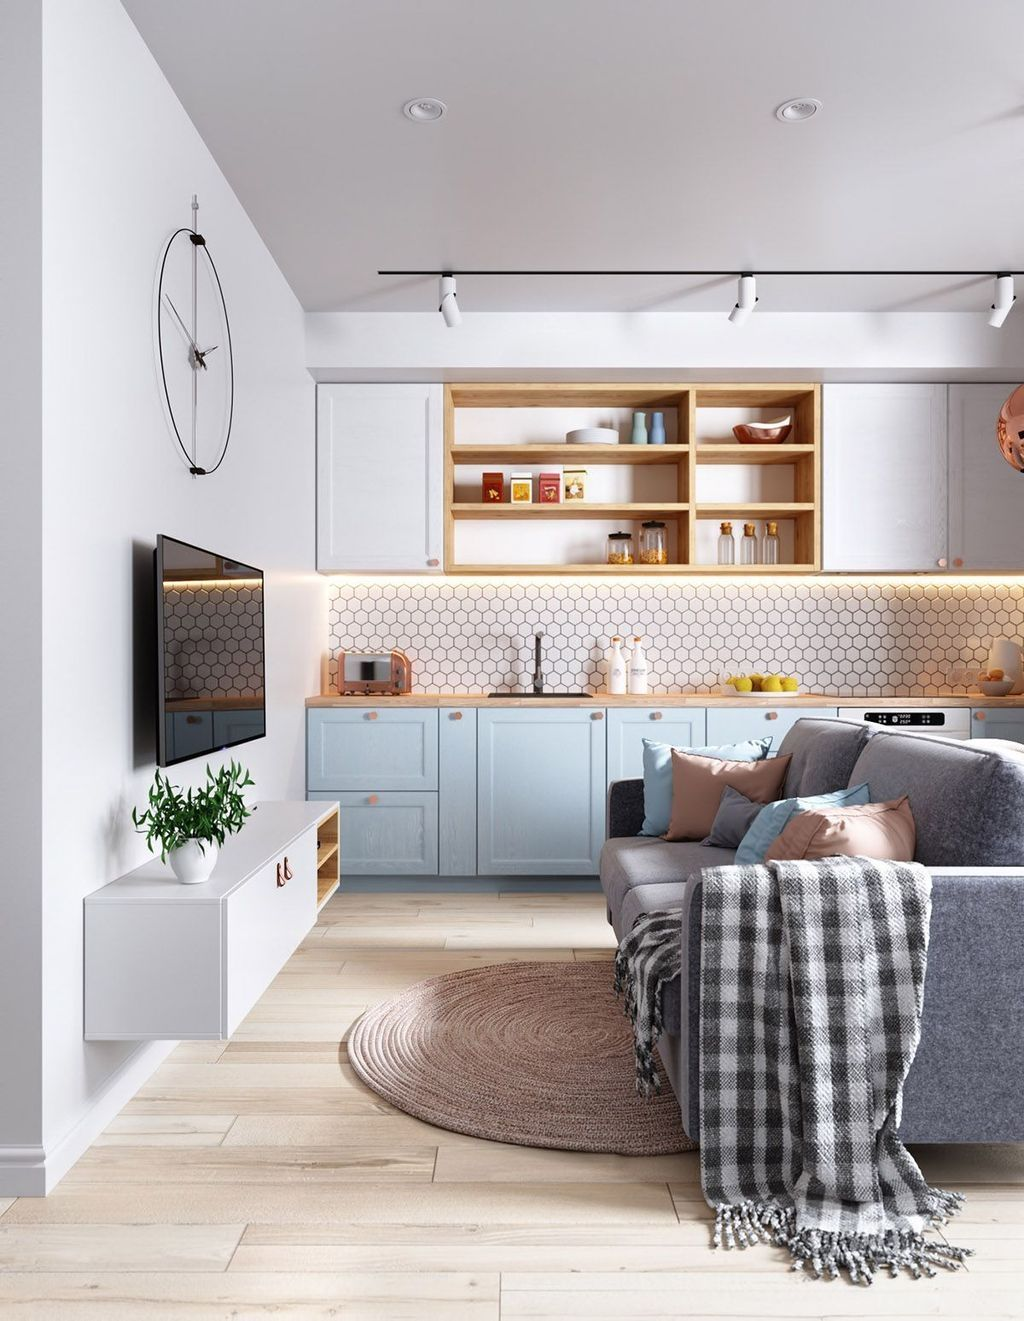 30 Modern Small Apartment Decoration Ideas Small Apartment Interior Interior Design Apartment Small Apartment Interior